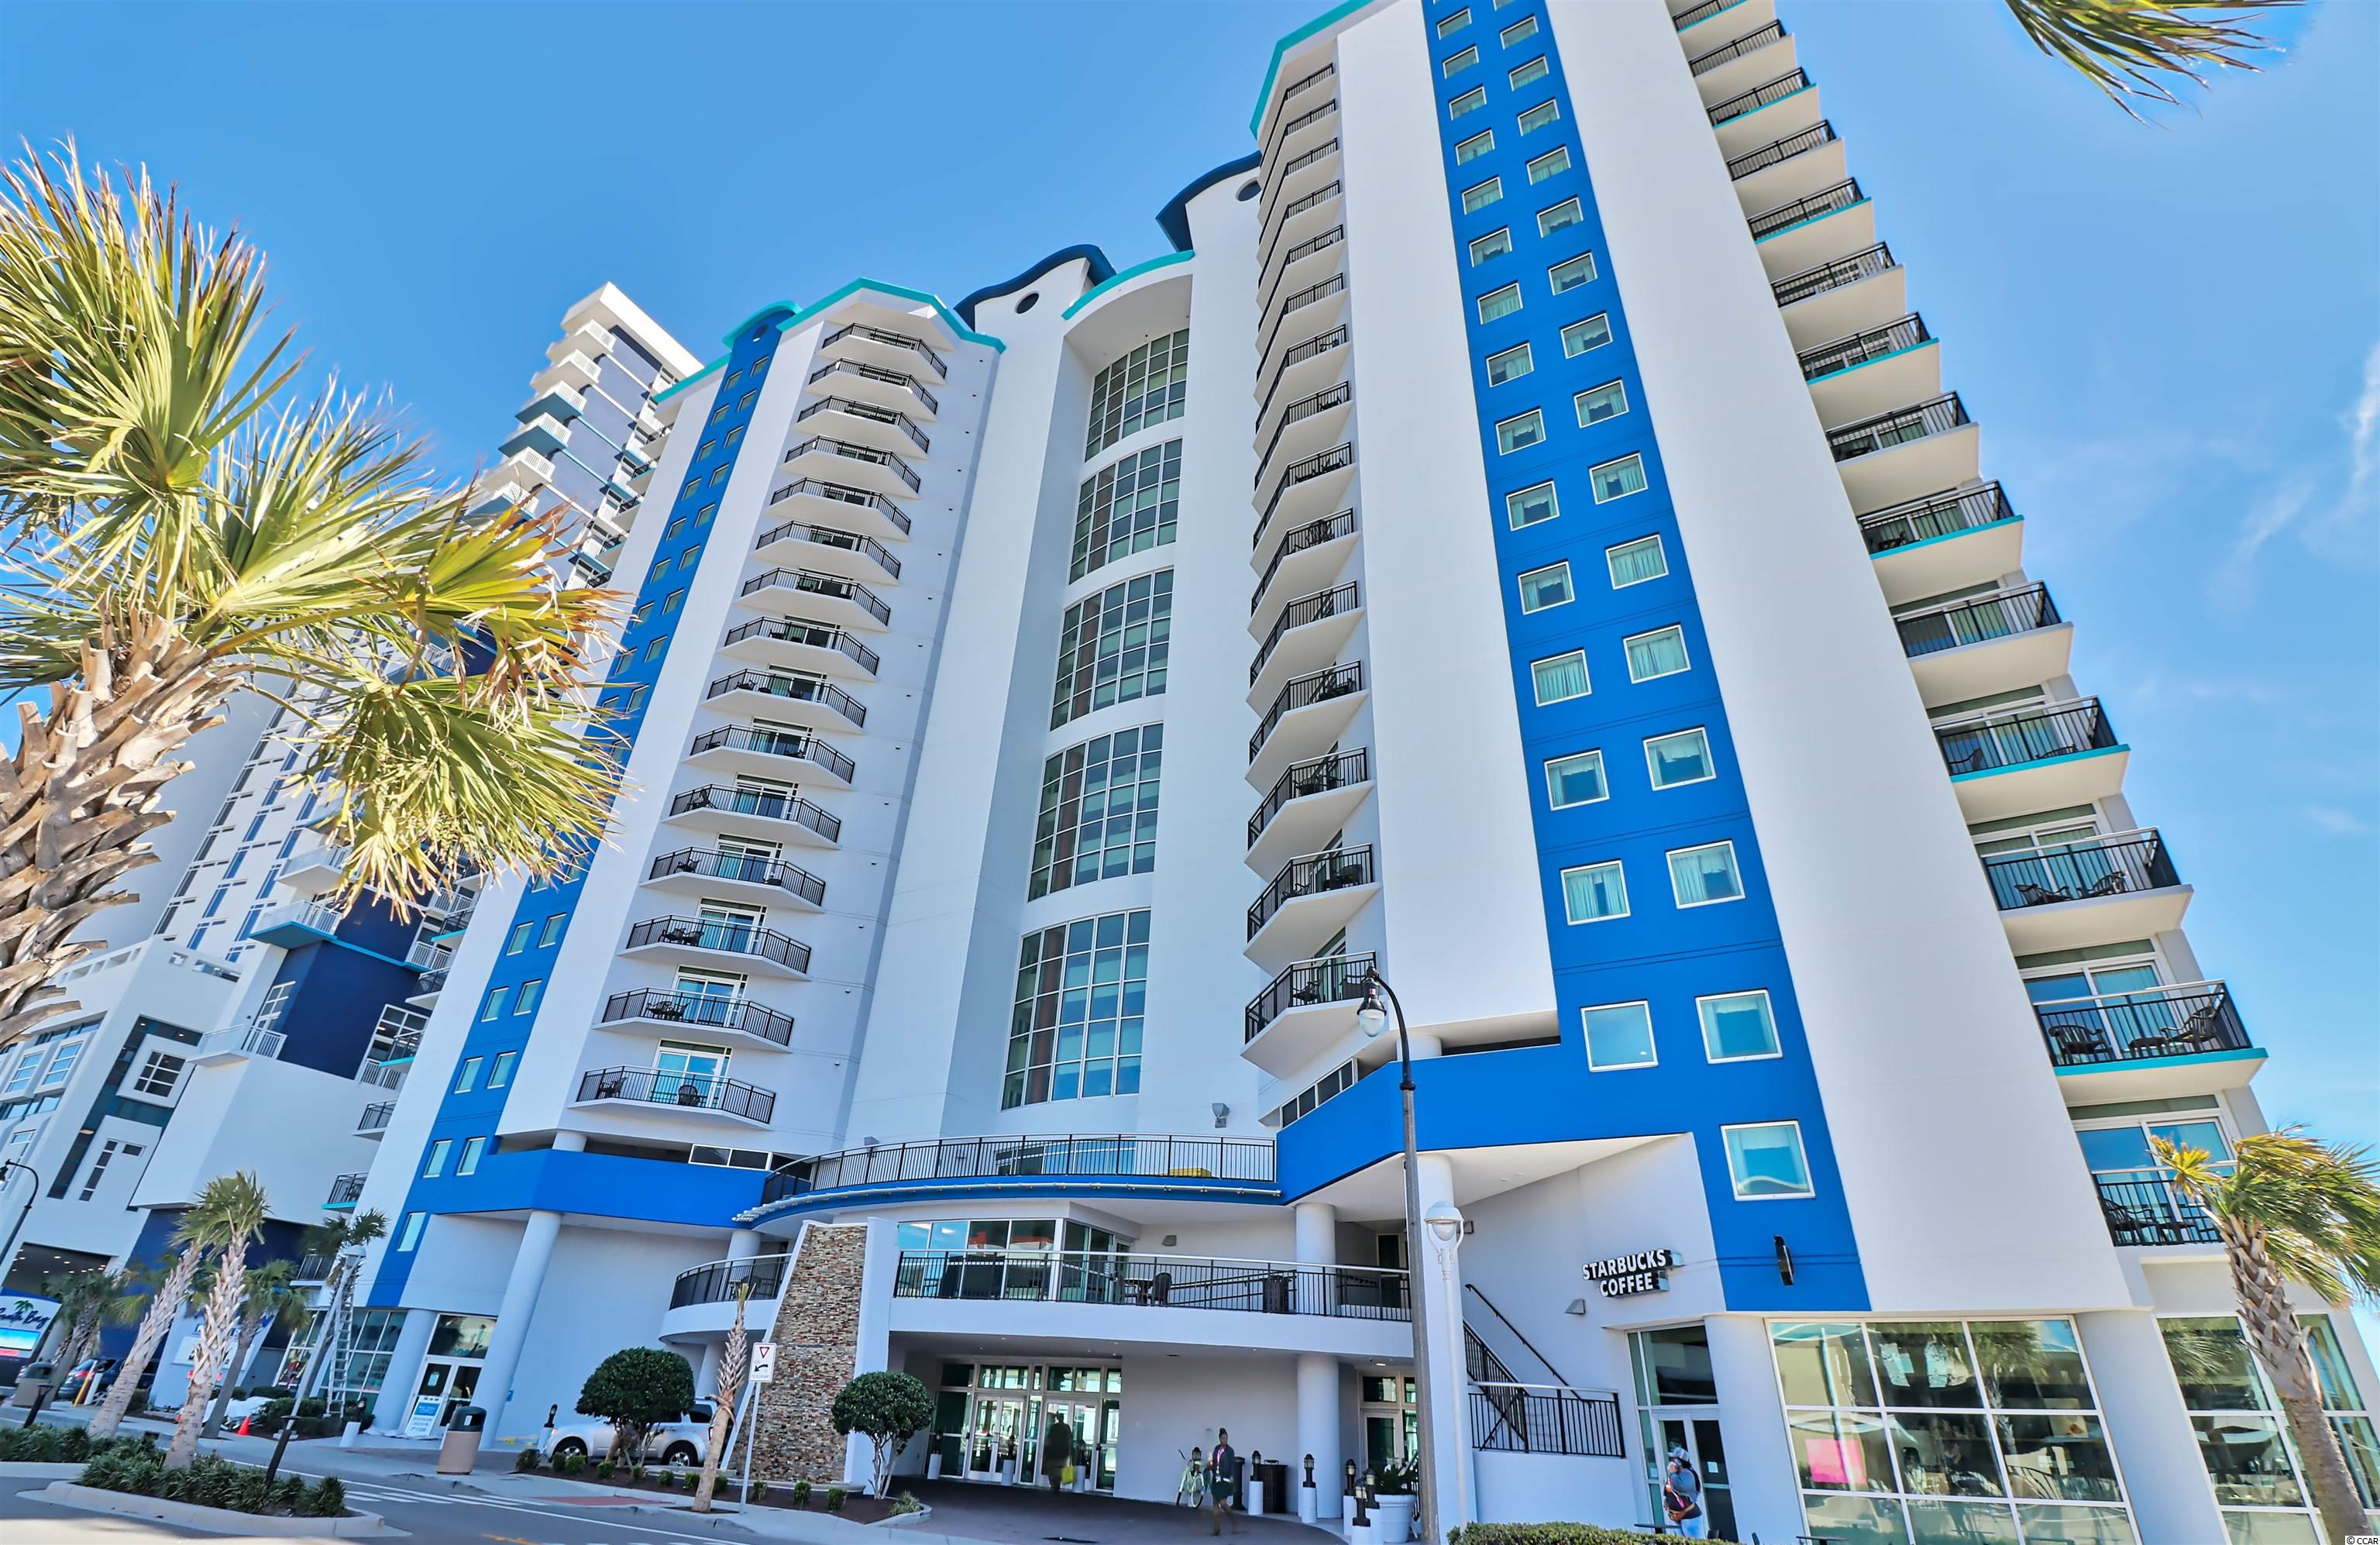 Welcome home to this unique 1 true bedroom, 1 full bath ocean view condo in the Bay View Resort in Myrtle Beach! Located in the heart of downtown Myrtle Beach, this is a great unit! This unit has been remodeled with new tile floors, new furniture, fresh paint, a stackable washer and dryer, and matching stainless steel appliances. This unit has the option of enjoying two separate balconies with an ocean view and view of Ocean Boulevard. This condo still performed during 2020 and has great numbers for 2021! This floorplan is literally two of a kind and is a very practical floorplan. The amenities of Bay View include the ON SITE full Starbucks, multiple water features including the swimming pool, indoor lazy river, kiddie pools and splash zone as well as relaxing hot tubs. Bay View Resort is directly on the boardwalk so the convenience is unparalleled! Looking South you can see the pier and enjoy the fireworks depending on the time of the year! The possibilities with this unit could include it being your new home, beach home, investment or rental opportunity, OR, a mixture of all the above!  Schedule your showing today.